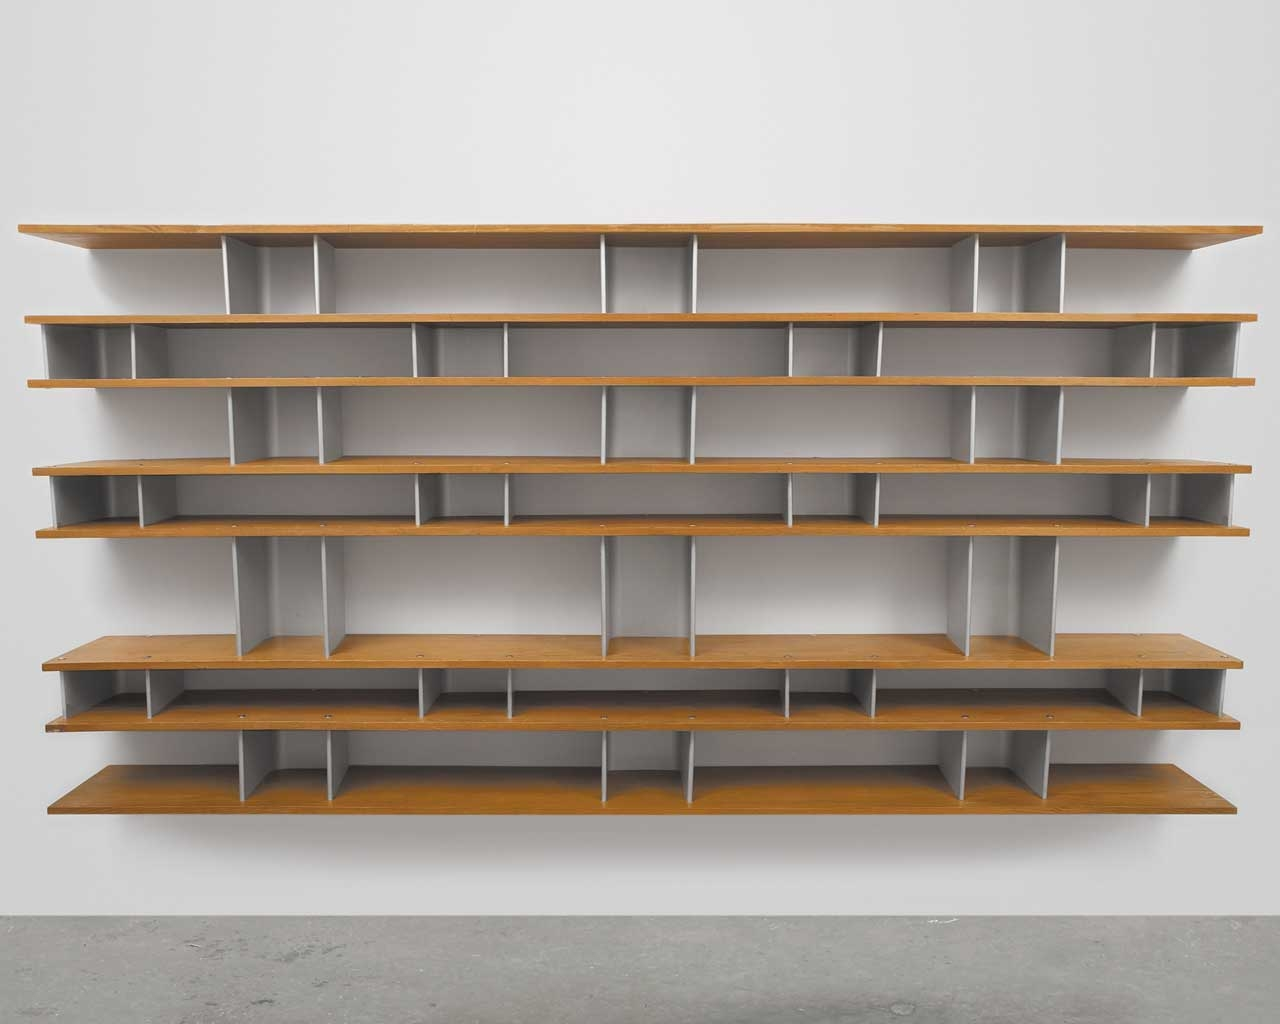 wall sized bookshelves idi design with full wall bookcase 15 of 15 - Wall Sized Bookshelves